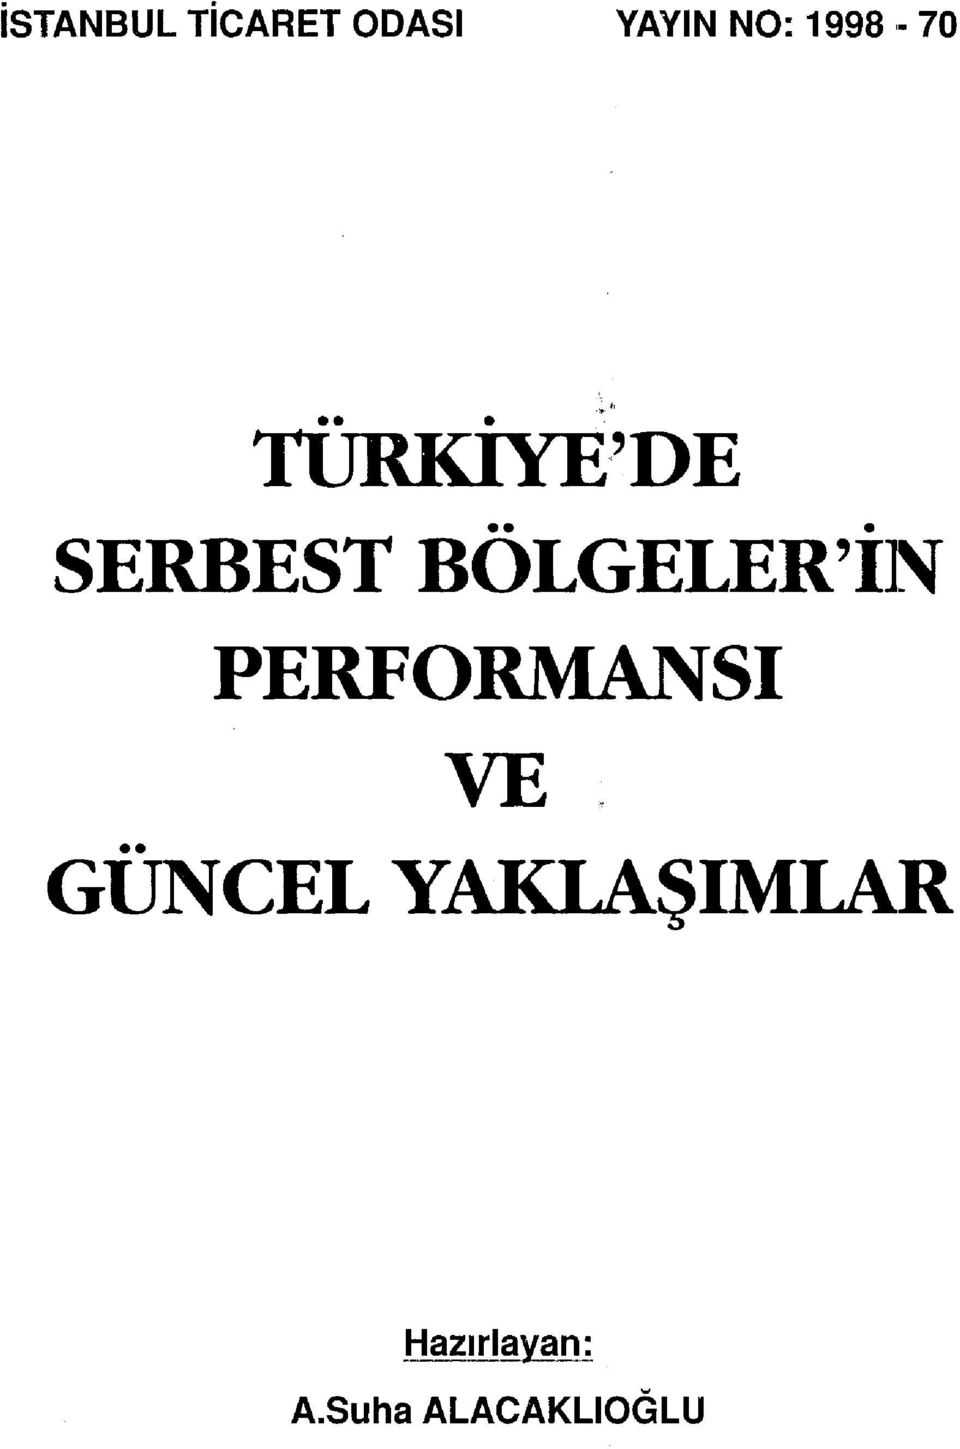 BÖLGELER'İN PERFORMANSI VE GÜNCEL